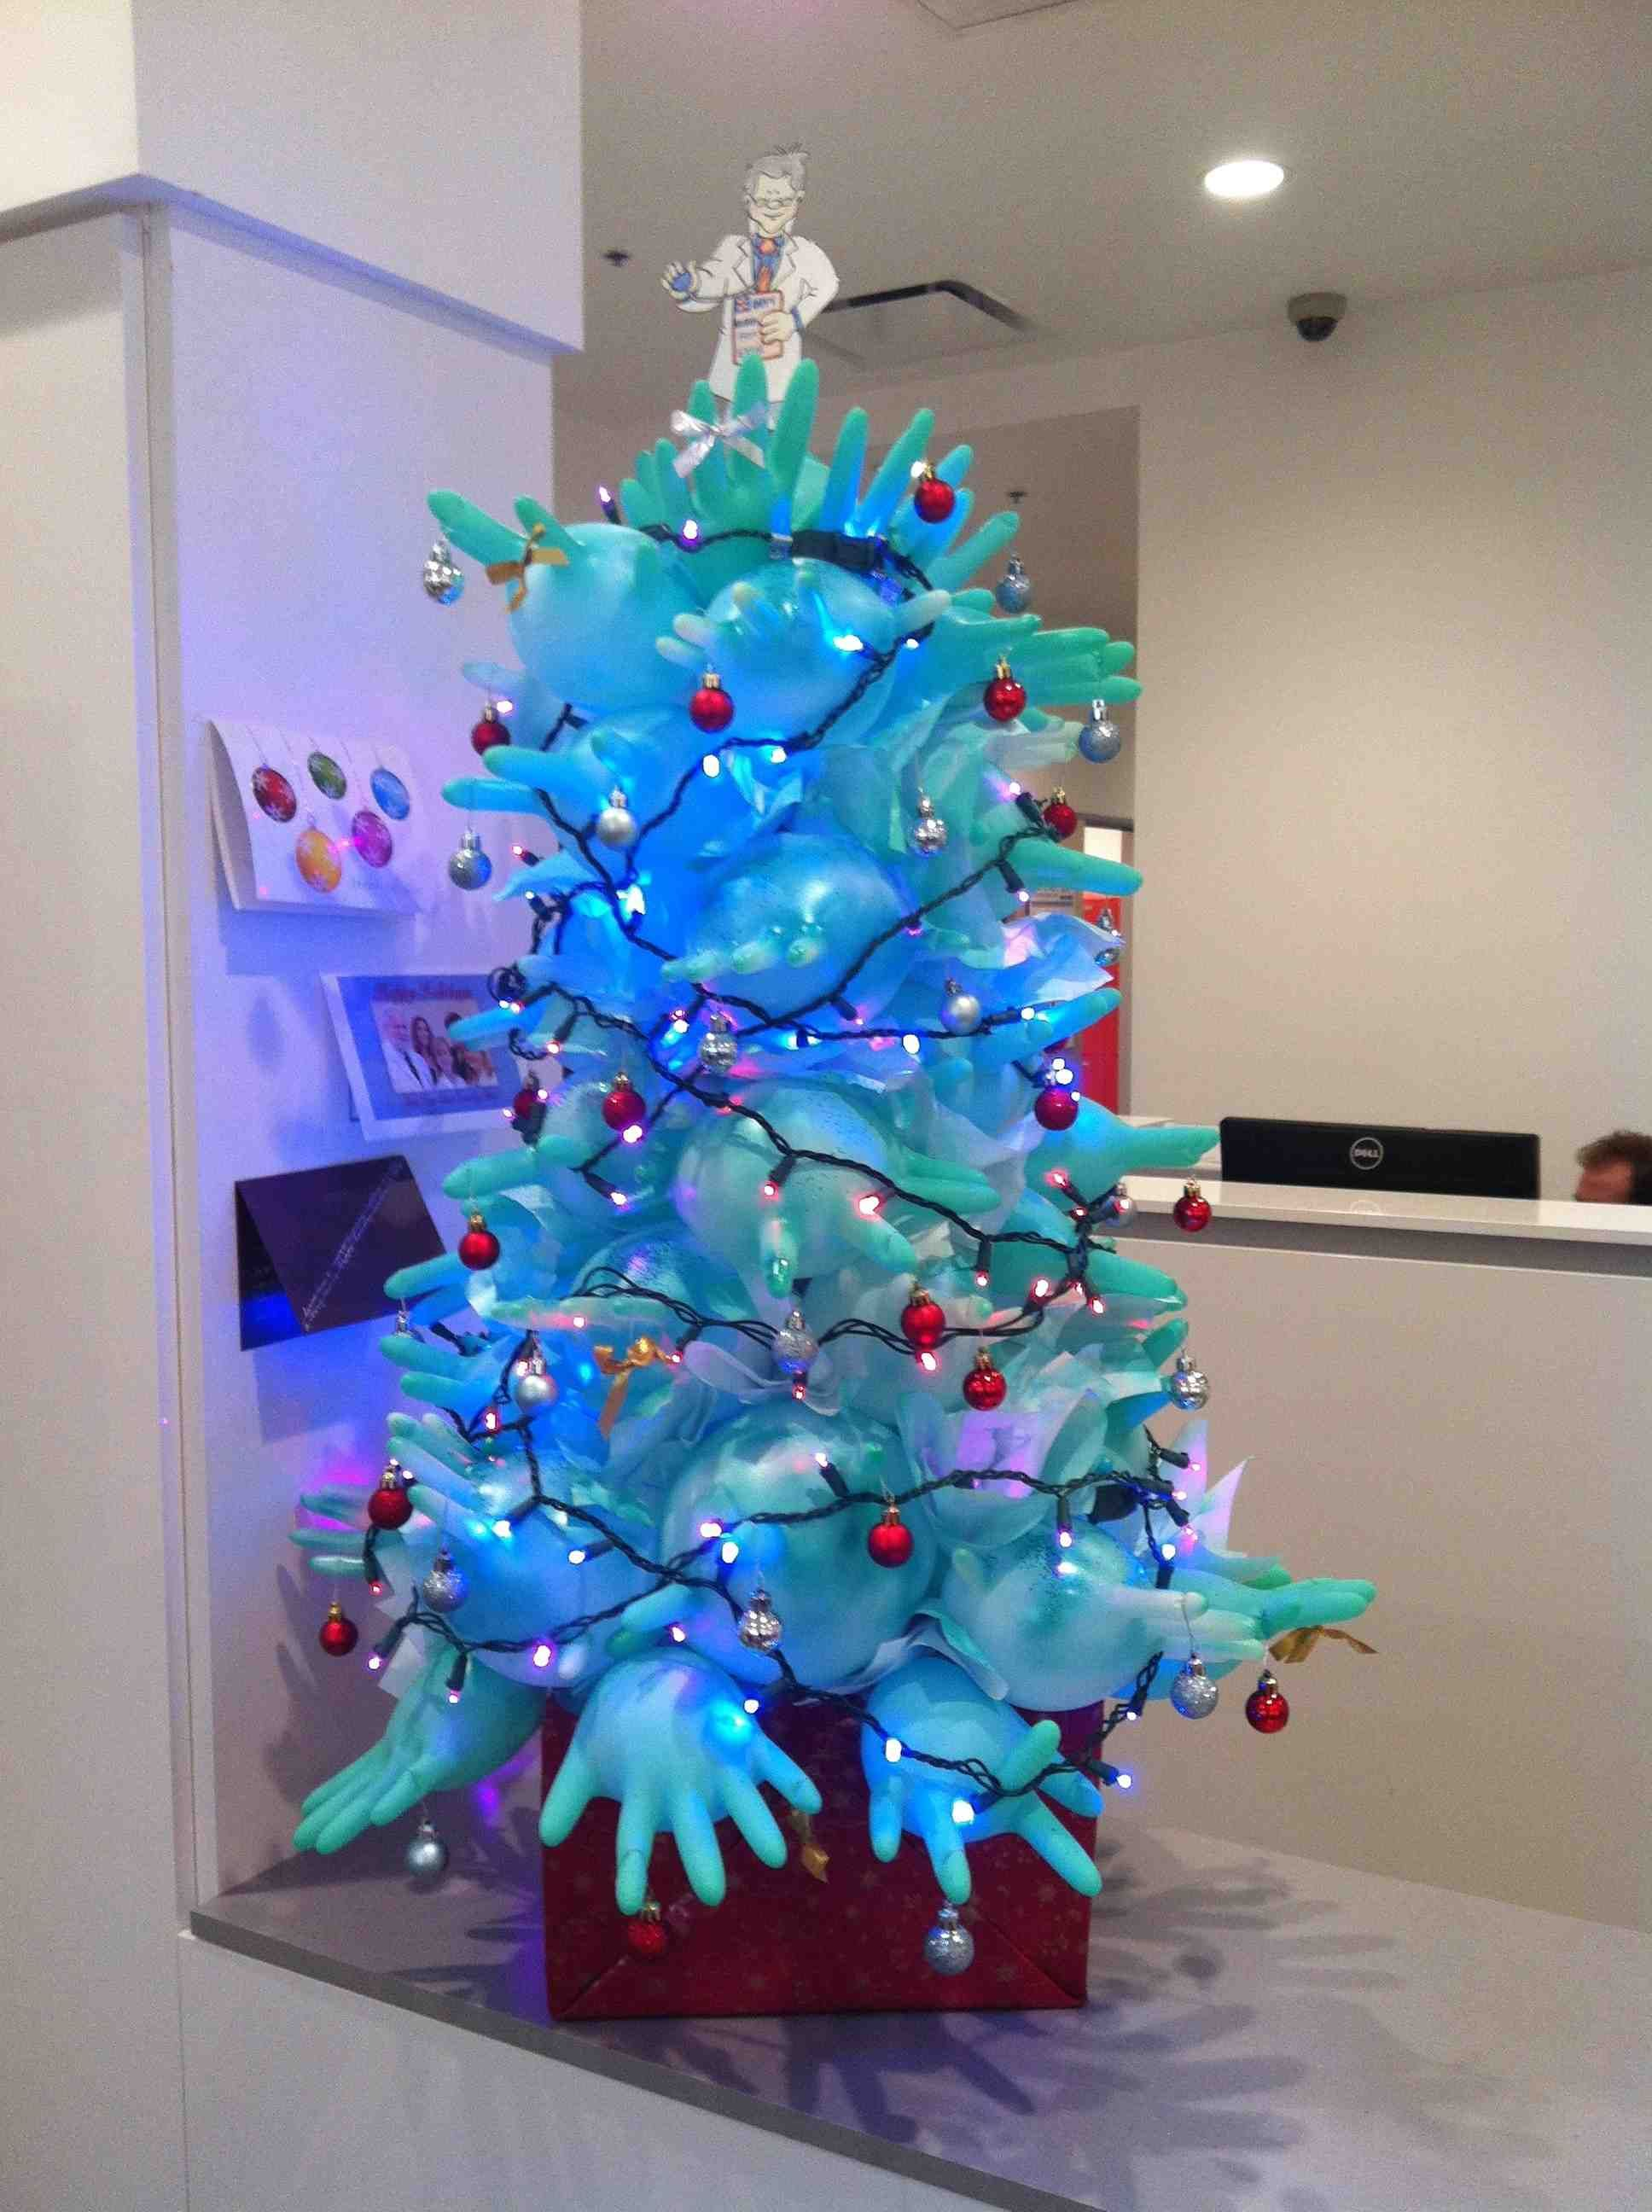 Rubber Glove Alternative Christmas Tree With Paint Glitter And Holiday Lights Office Christmas Decorations Amazing Christmas Trees Christmas Tree Themes